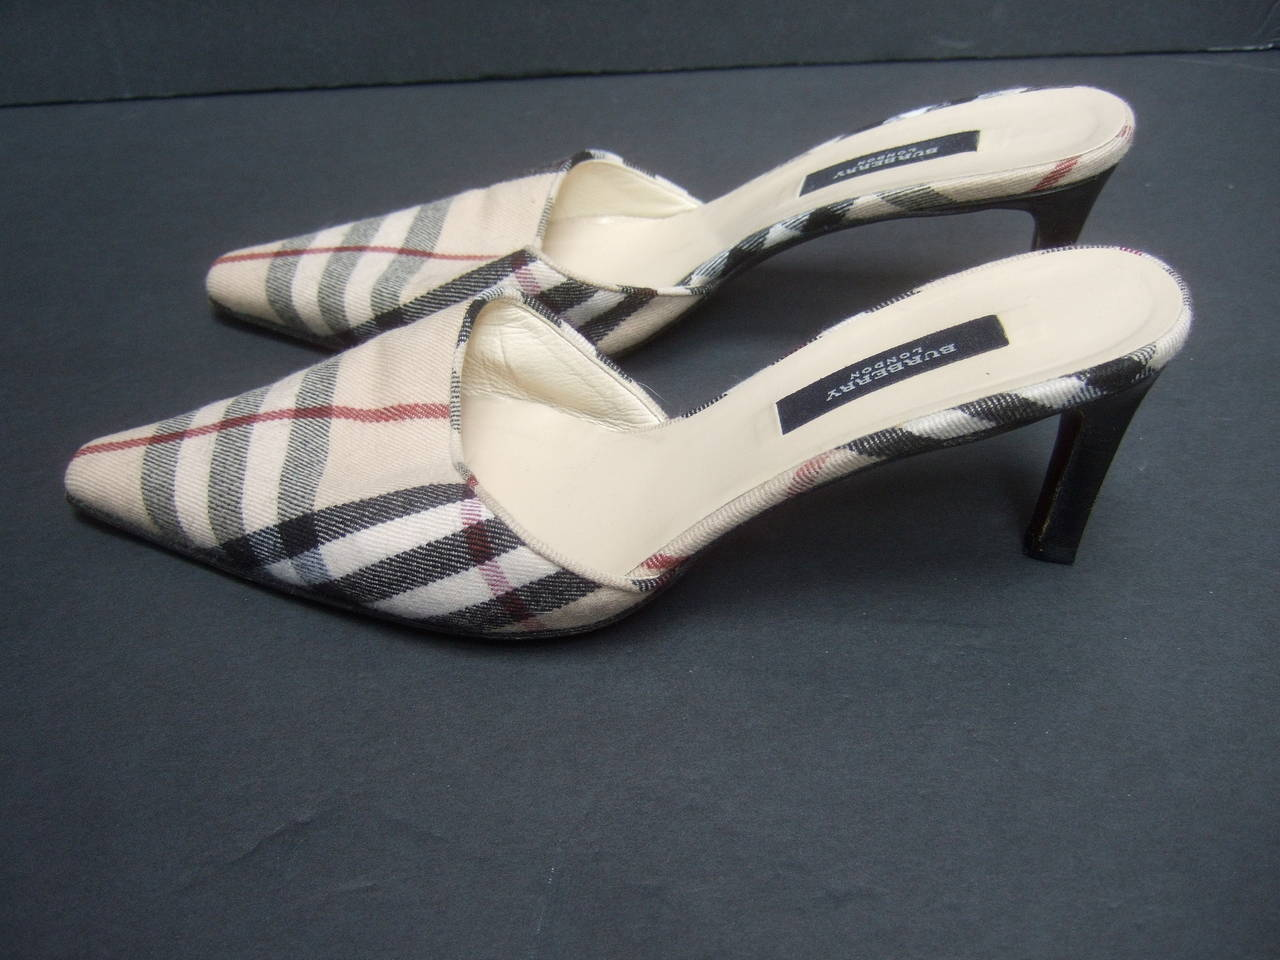 Burberry London Classic Nova Plaid Wool Mules Made in Italy Size 37.5 5